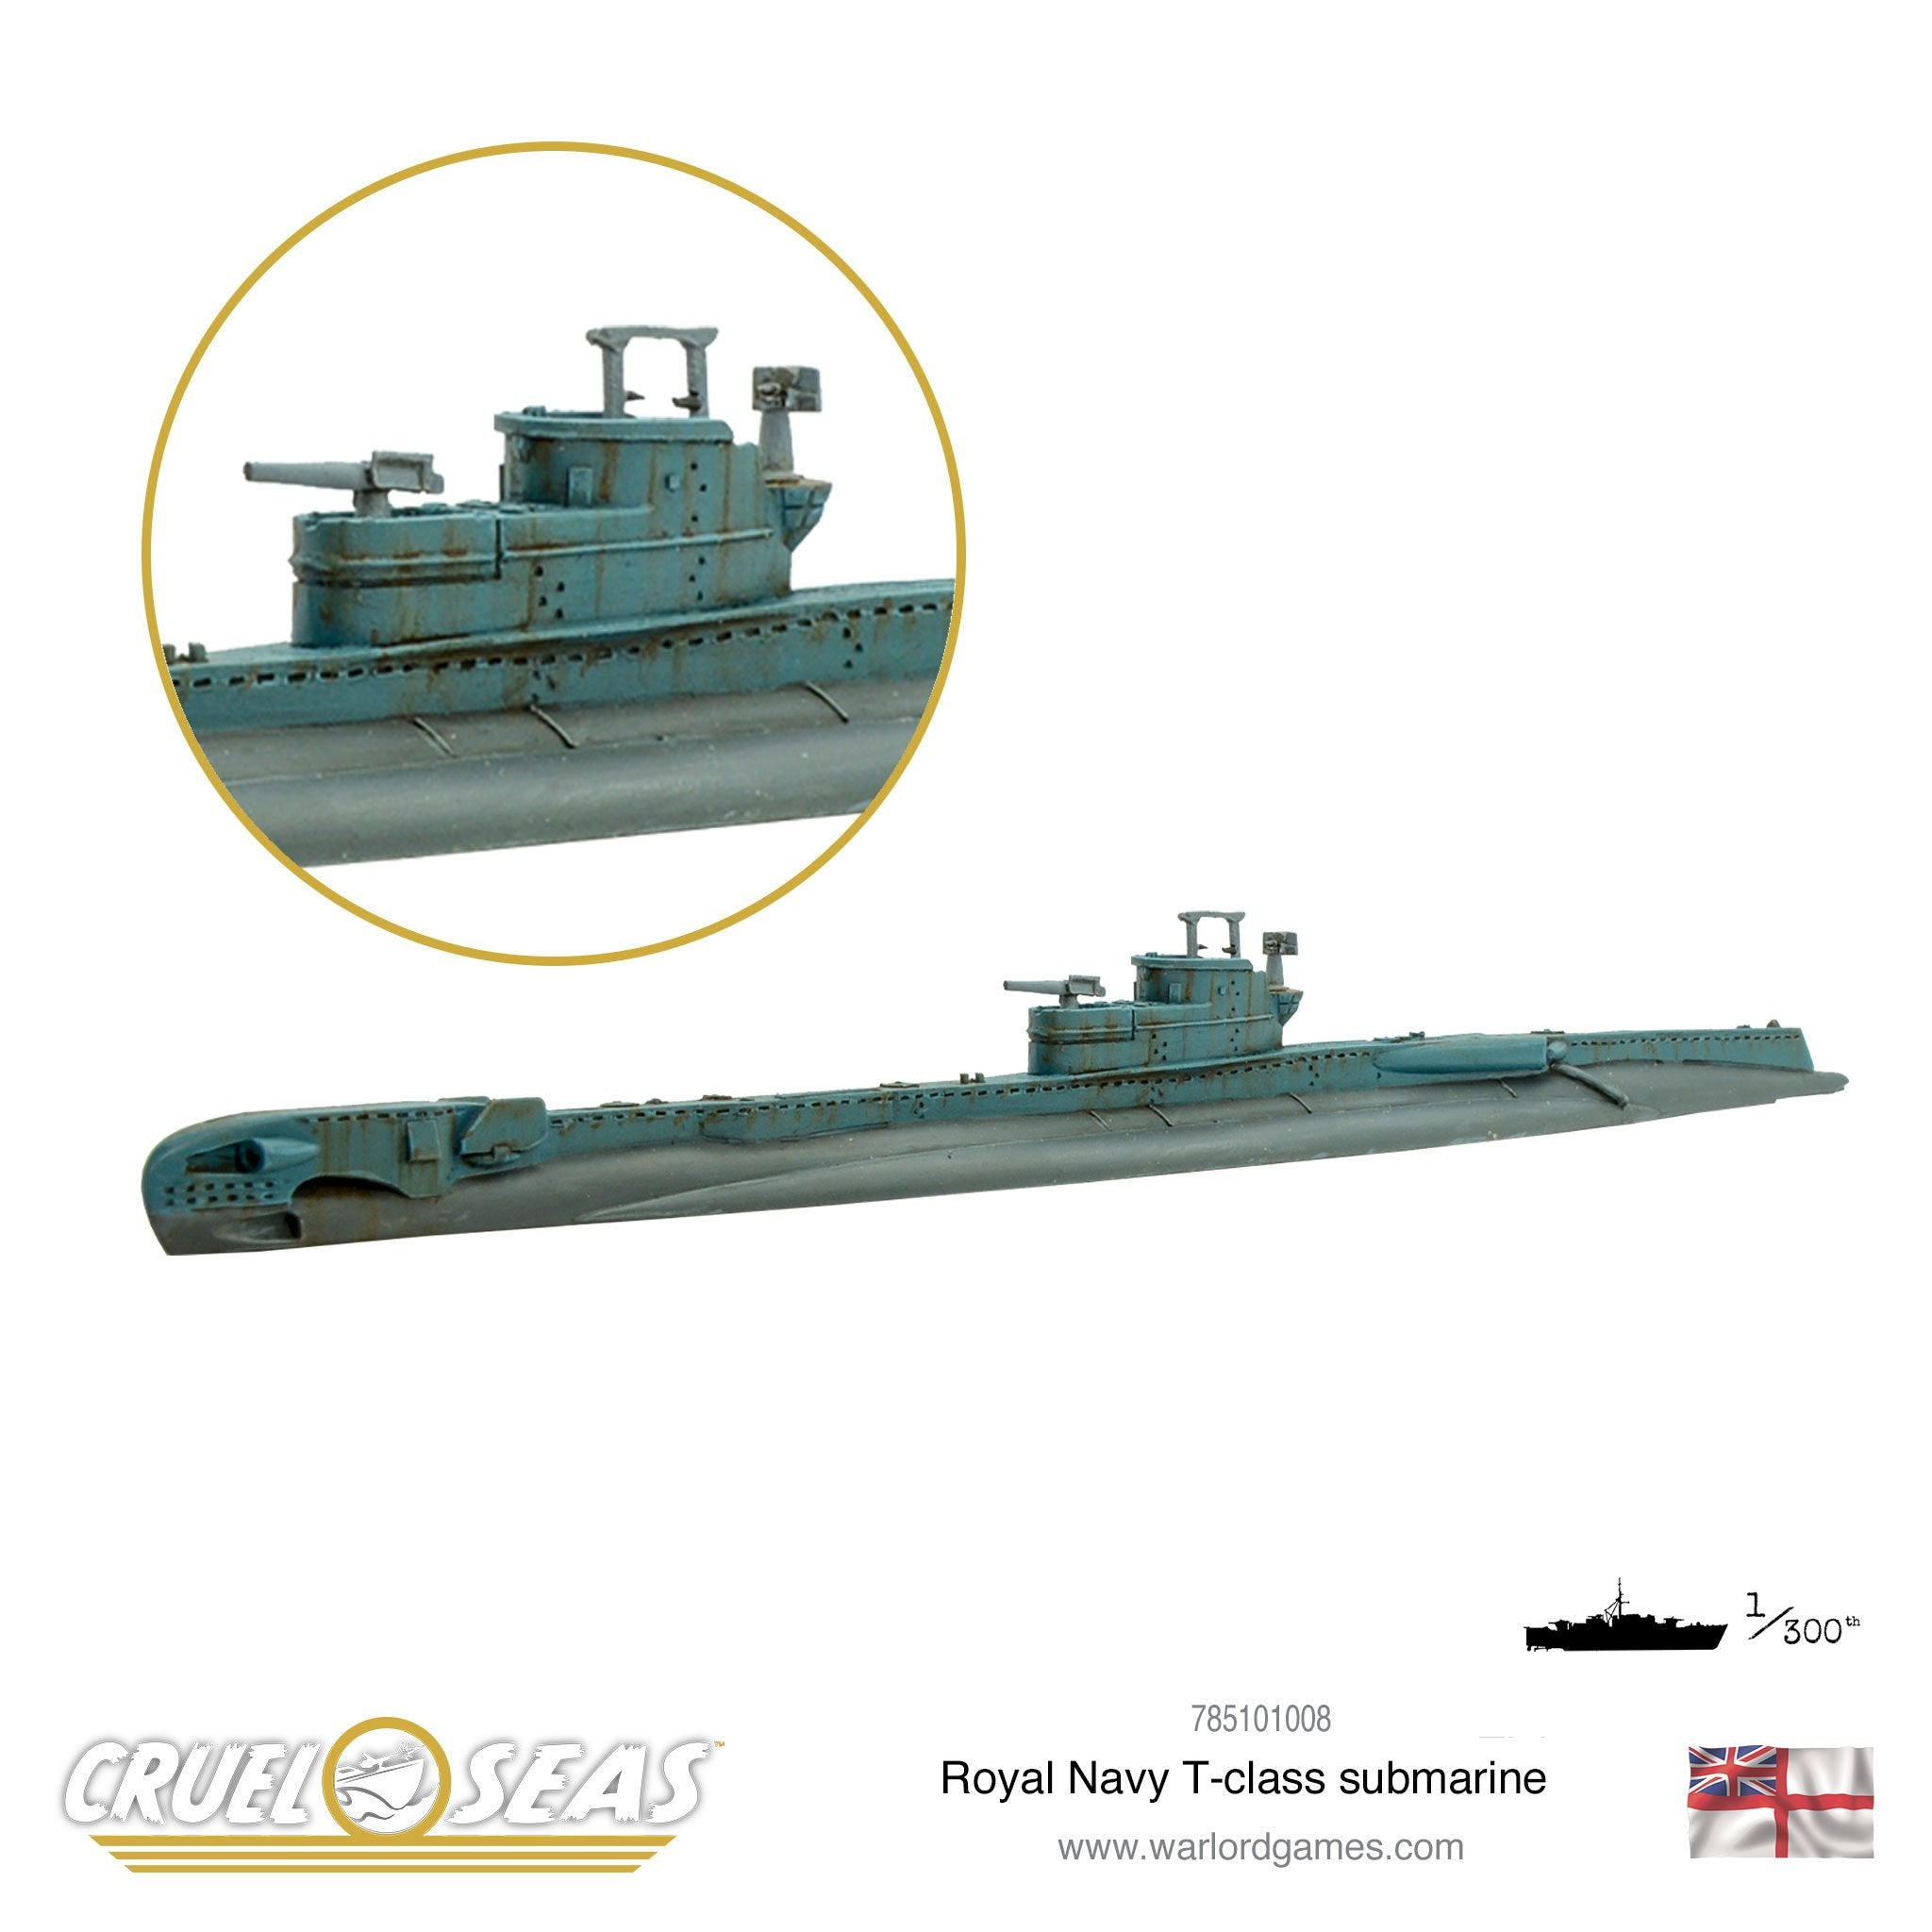 Cruel Seas: Royal Navy T-class submarine